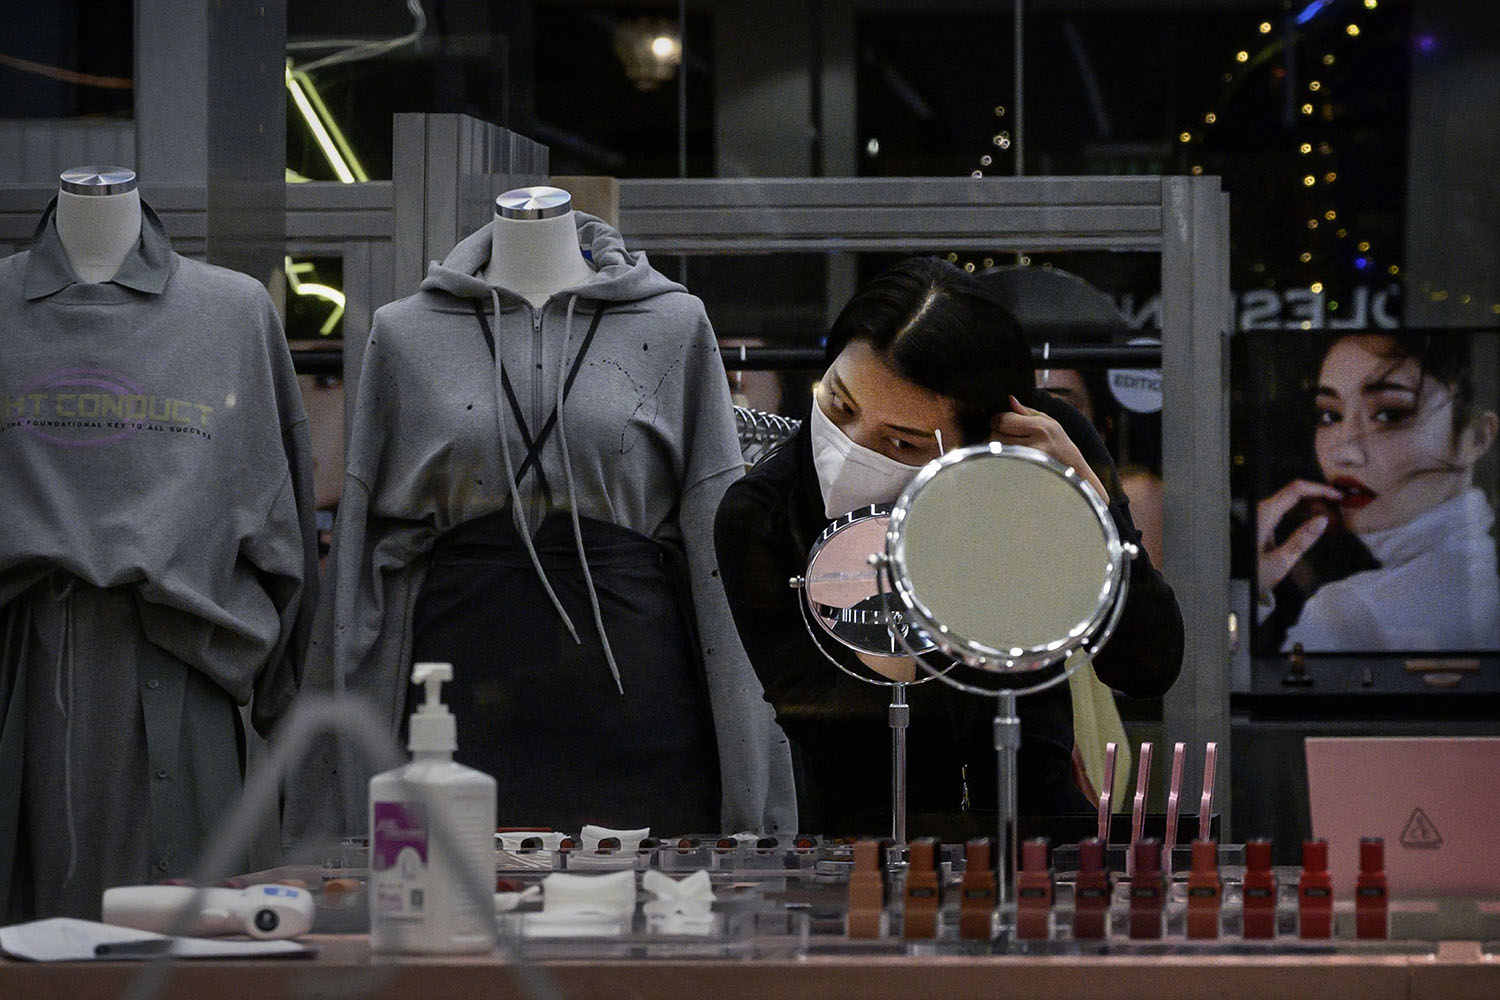 A Chinese woman wears a protective mask as she puts on make-up while waiting for customers at a clothing store in Beijing on Feb. 23.